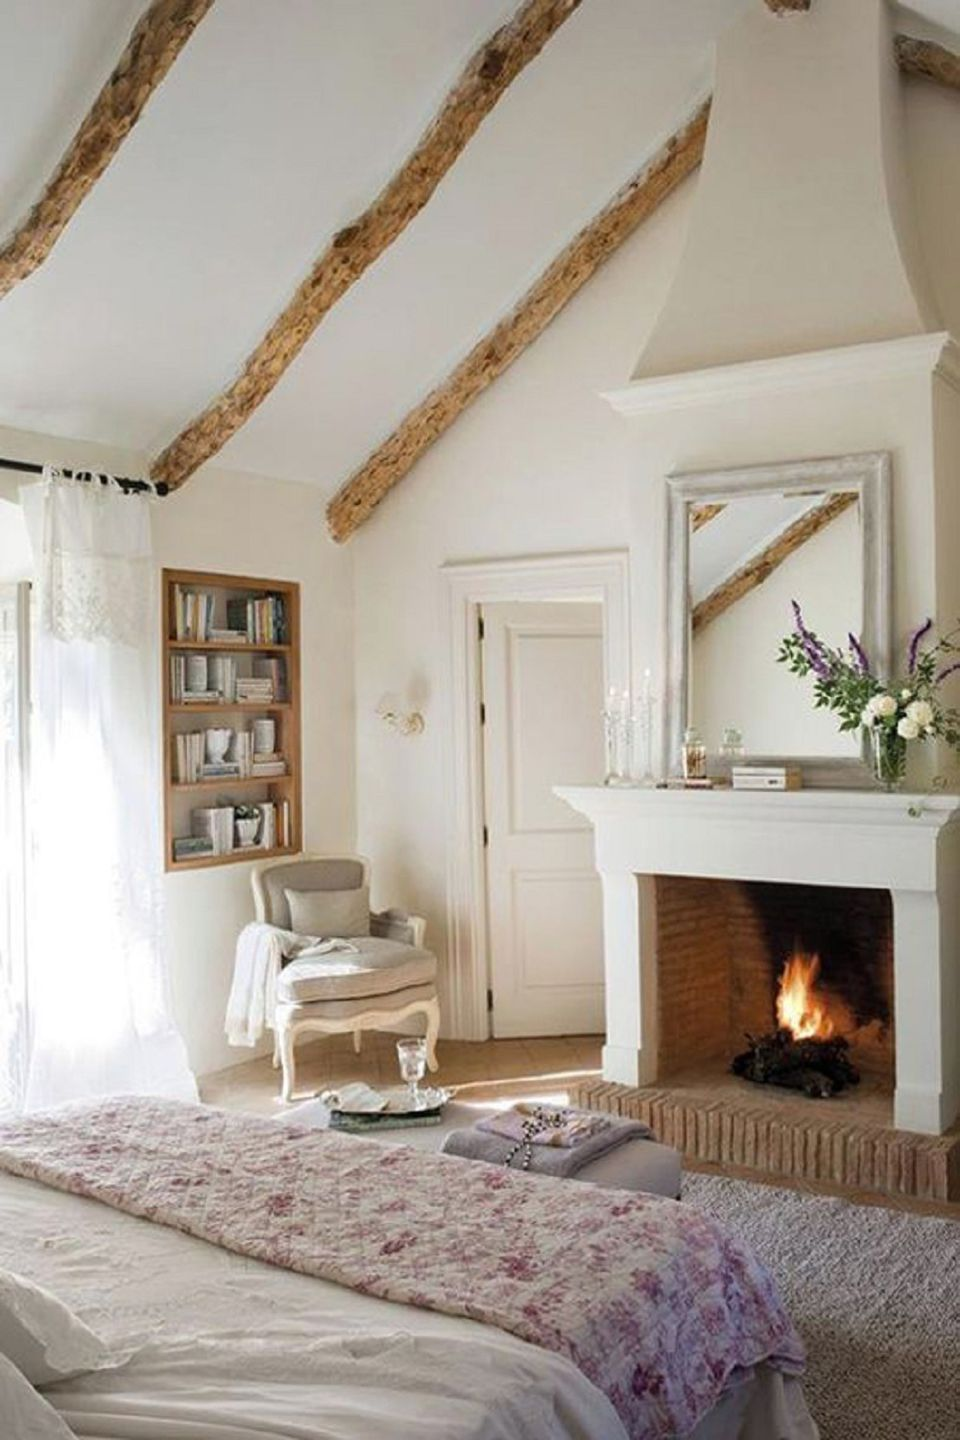 Fireplace in country bedroom